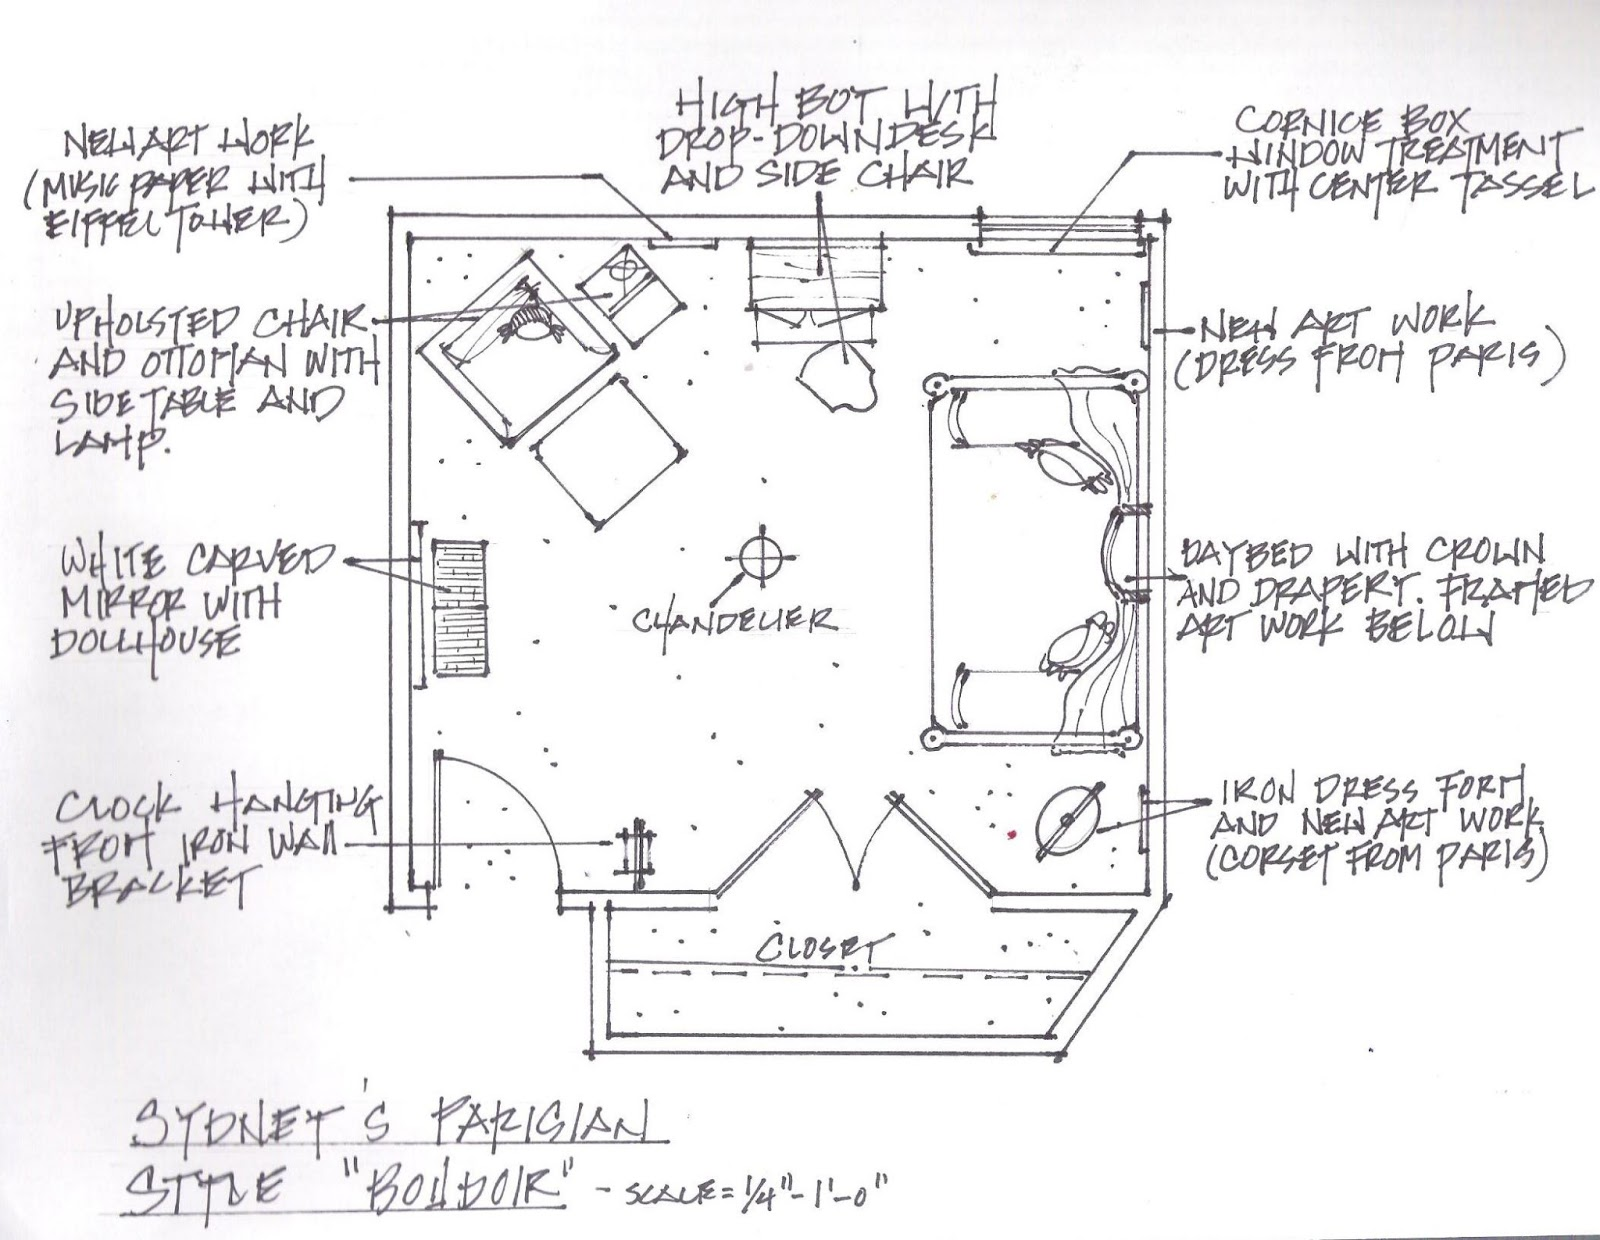 How To Draw Architectural Plans By Hand Of Digs Are Hand Rendered Interior Drawings A Dying Art